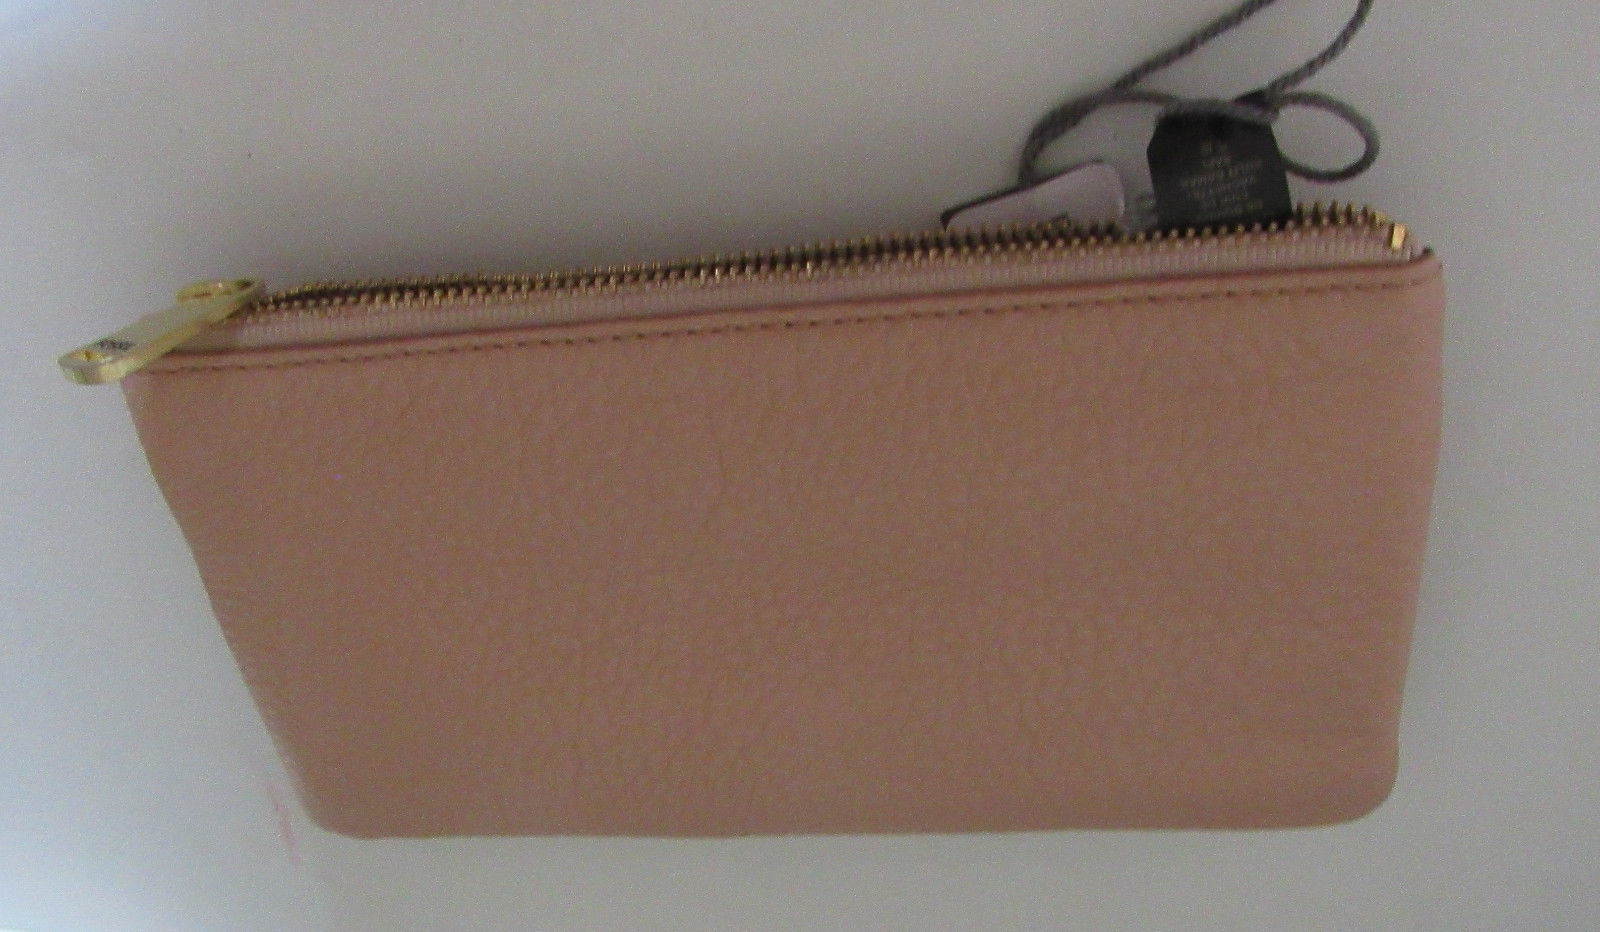 FOSSIL WOMEN'S WALLET TOP ZIP CLOSE CLUTCH GENUINE 100%LEATHER BEIGE NEW WI TAG